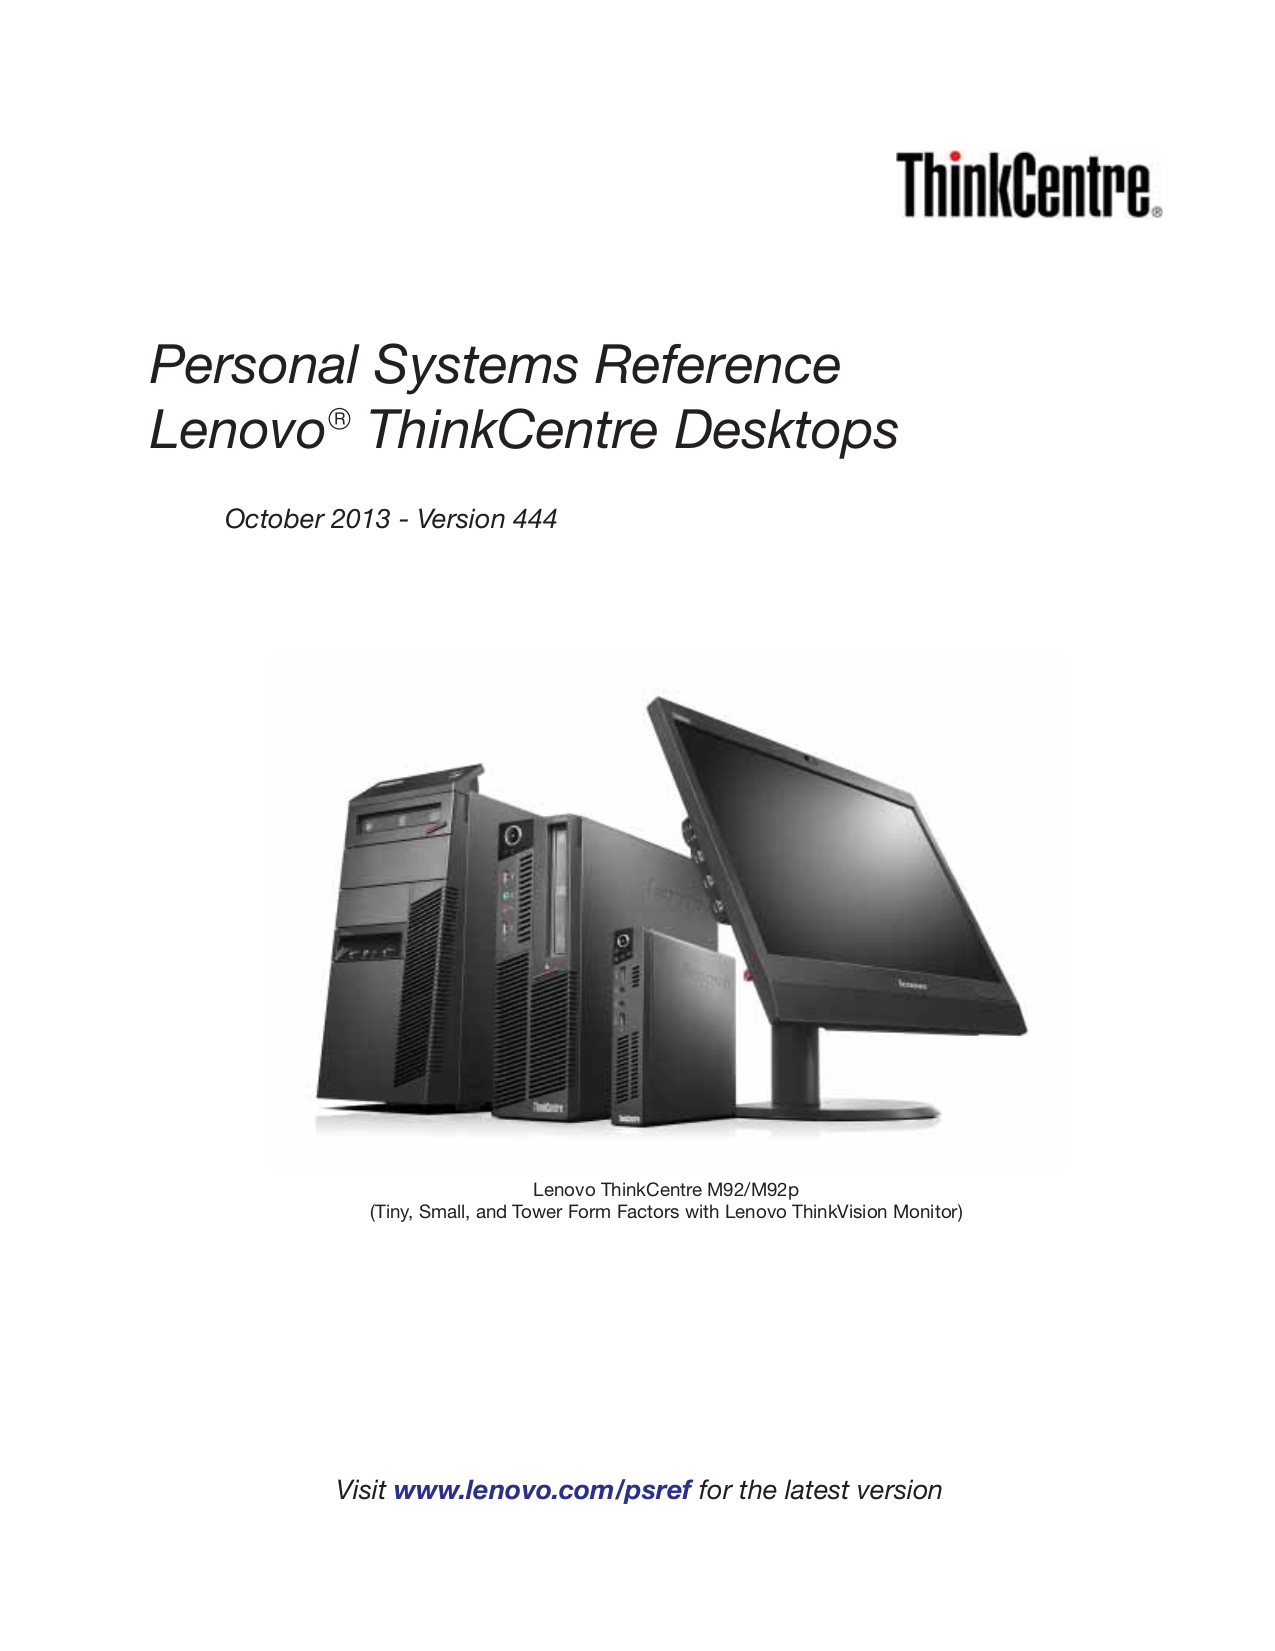 pdf for Lenovo Desktop ThinkCentre M58e 7307 manual